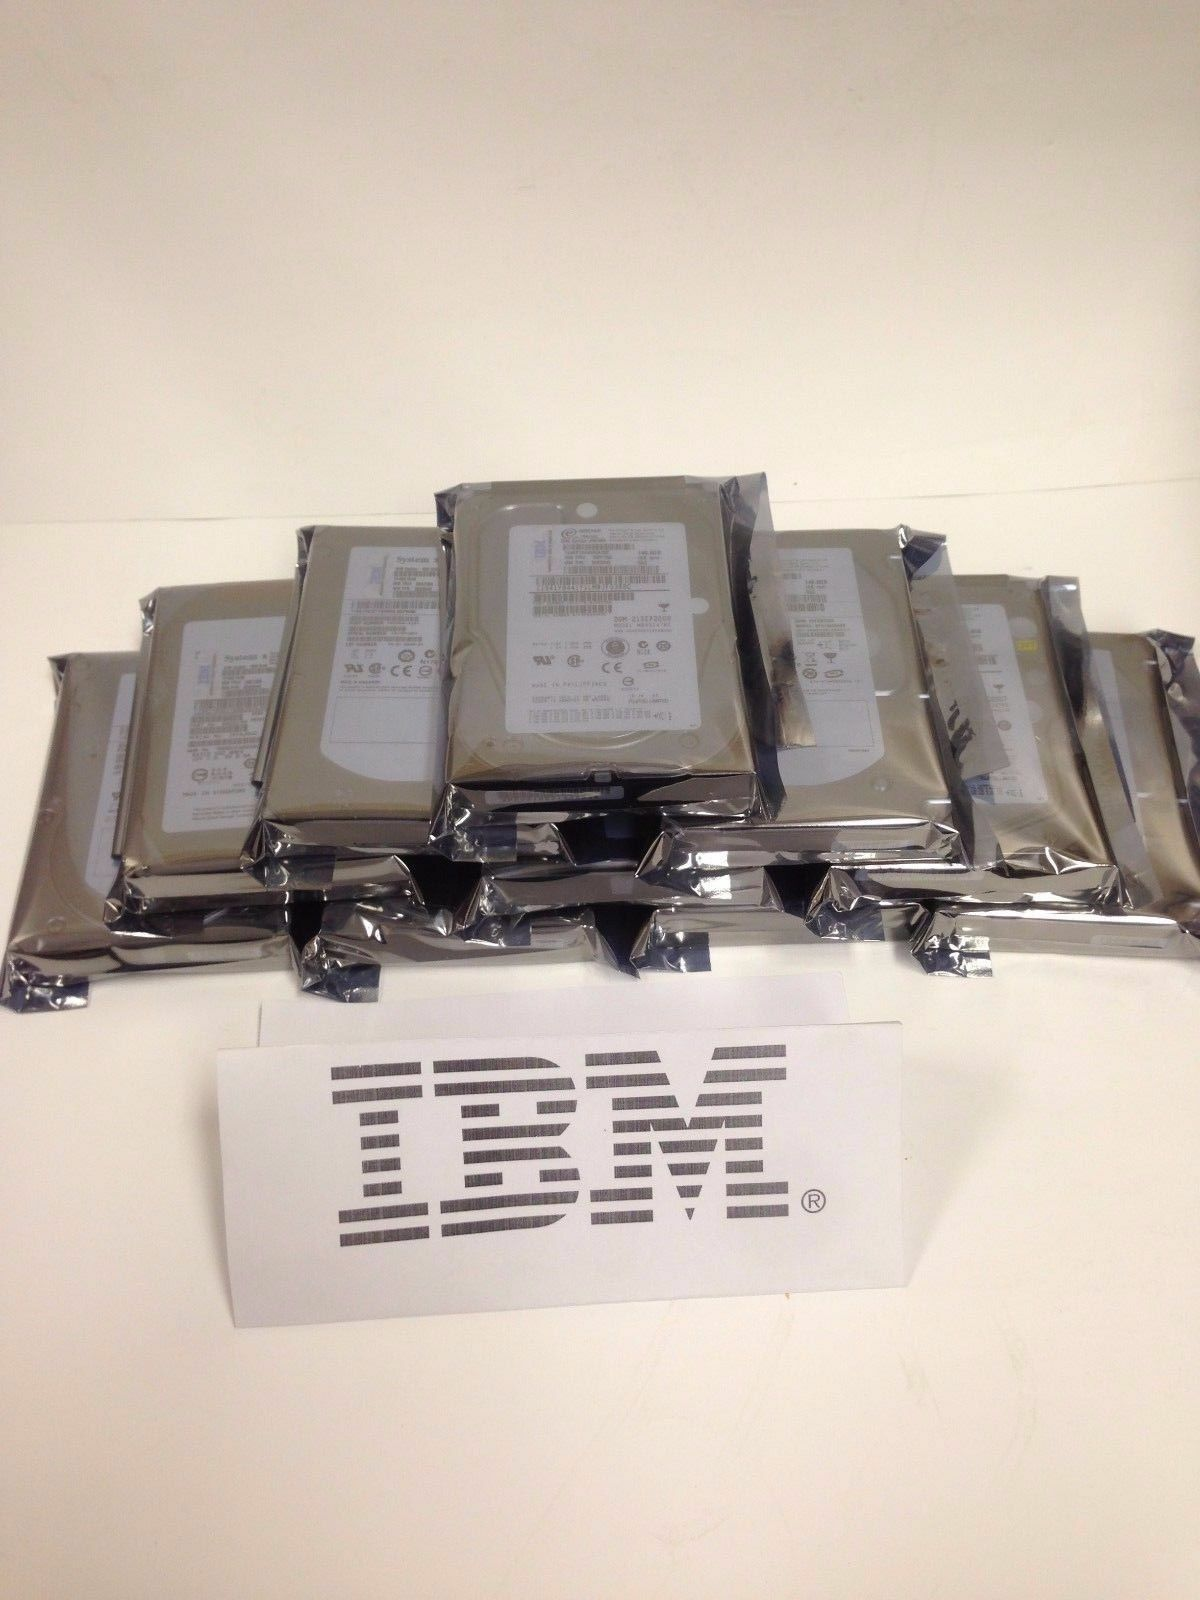 IBM 32P0730 IBM Genuine 73.4 GB 10K U 320 HOT SWAP HDD with Tray 32p0727